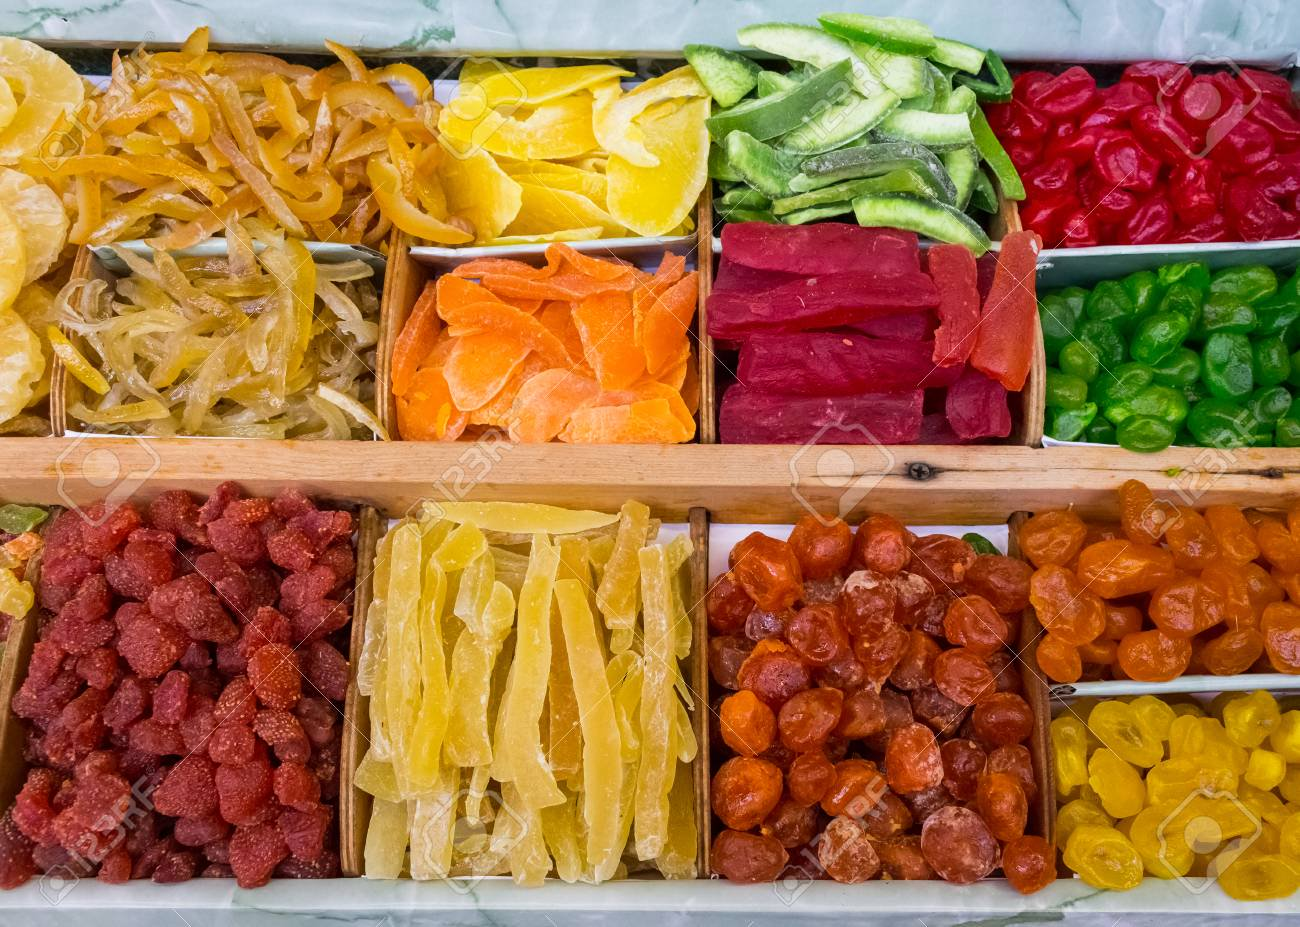 Dried fruit is much higher in sugar & calories than fresh fruit.   Dried fruit has been given a #health halo that encourages eating of this 'candy.'  During drying, the sugars in the fruit become concentrated & additional sugar may be added during processing.  #occasionaltreat https://t.co/YoudknrCTn